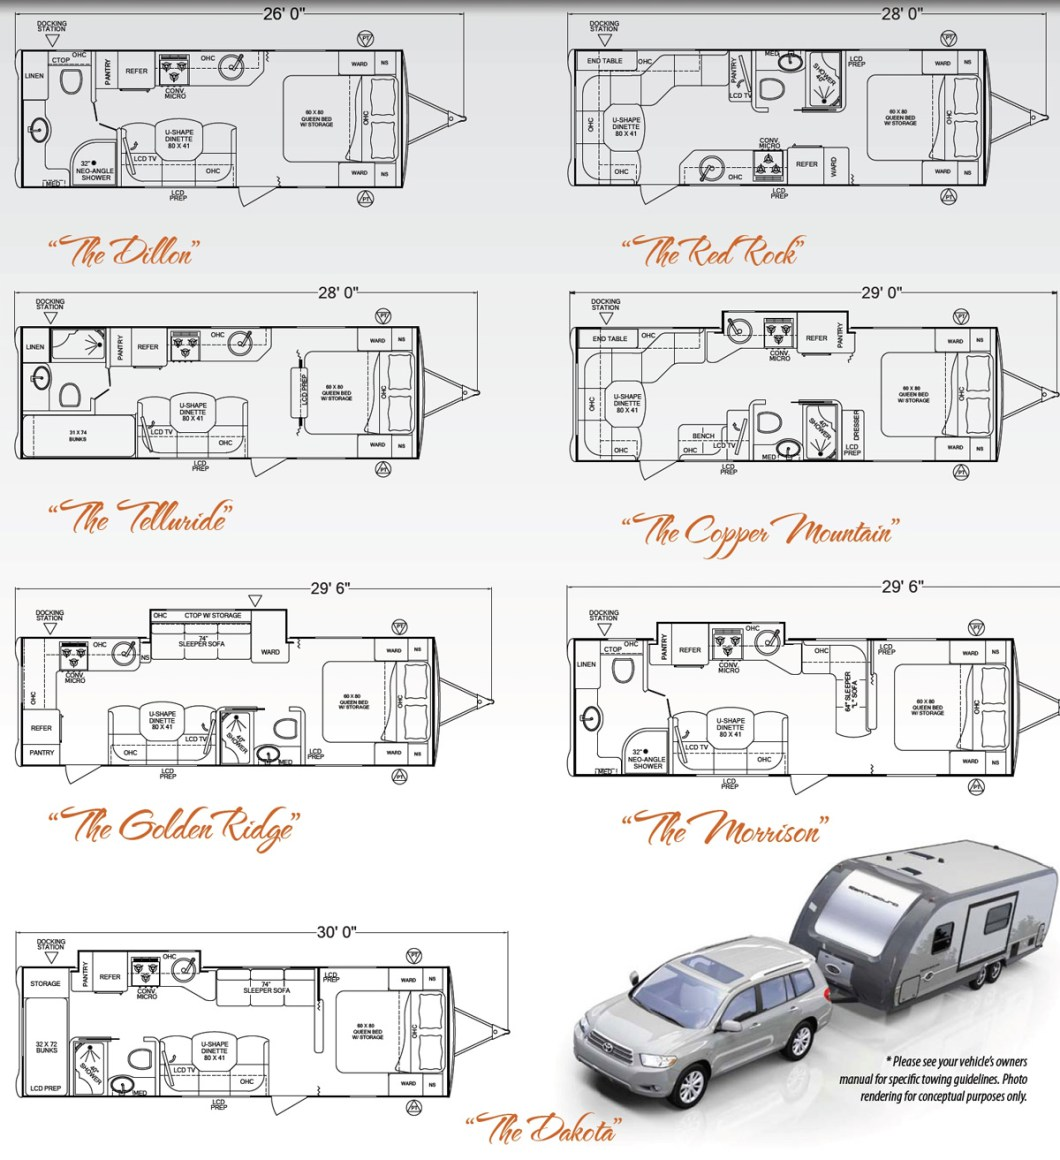 Fleetwood Mallard Travel Trailer Floor Plans